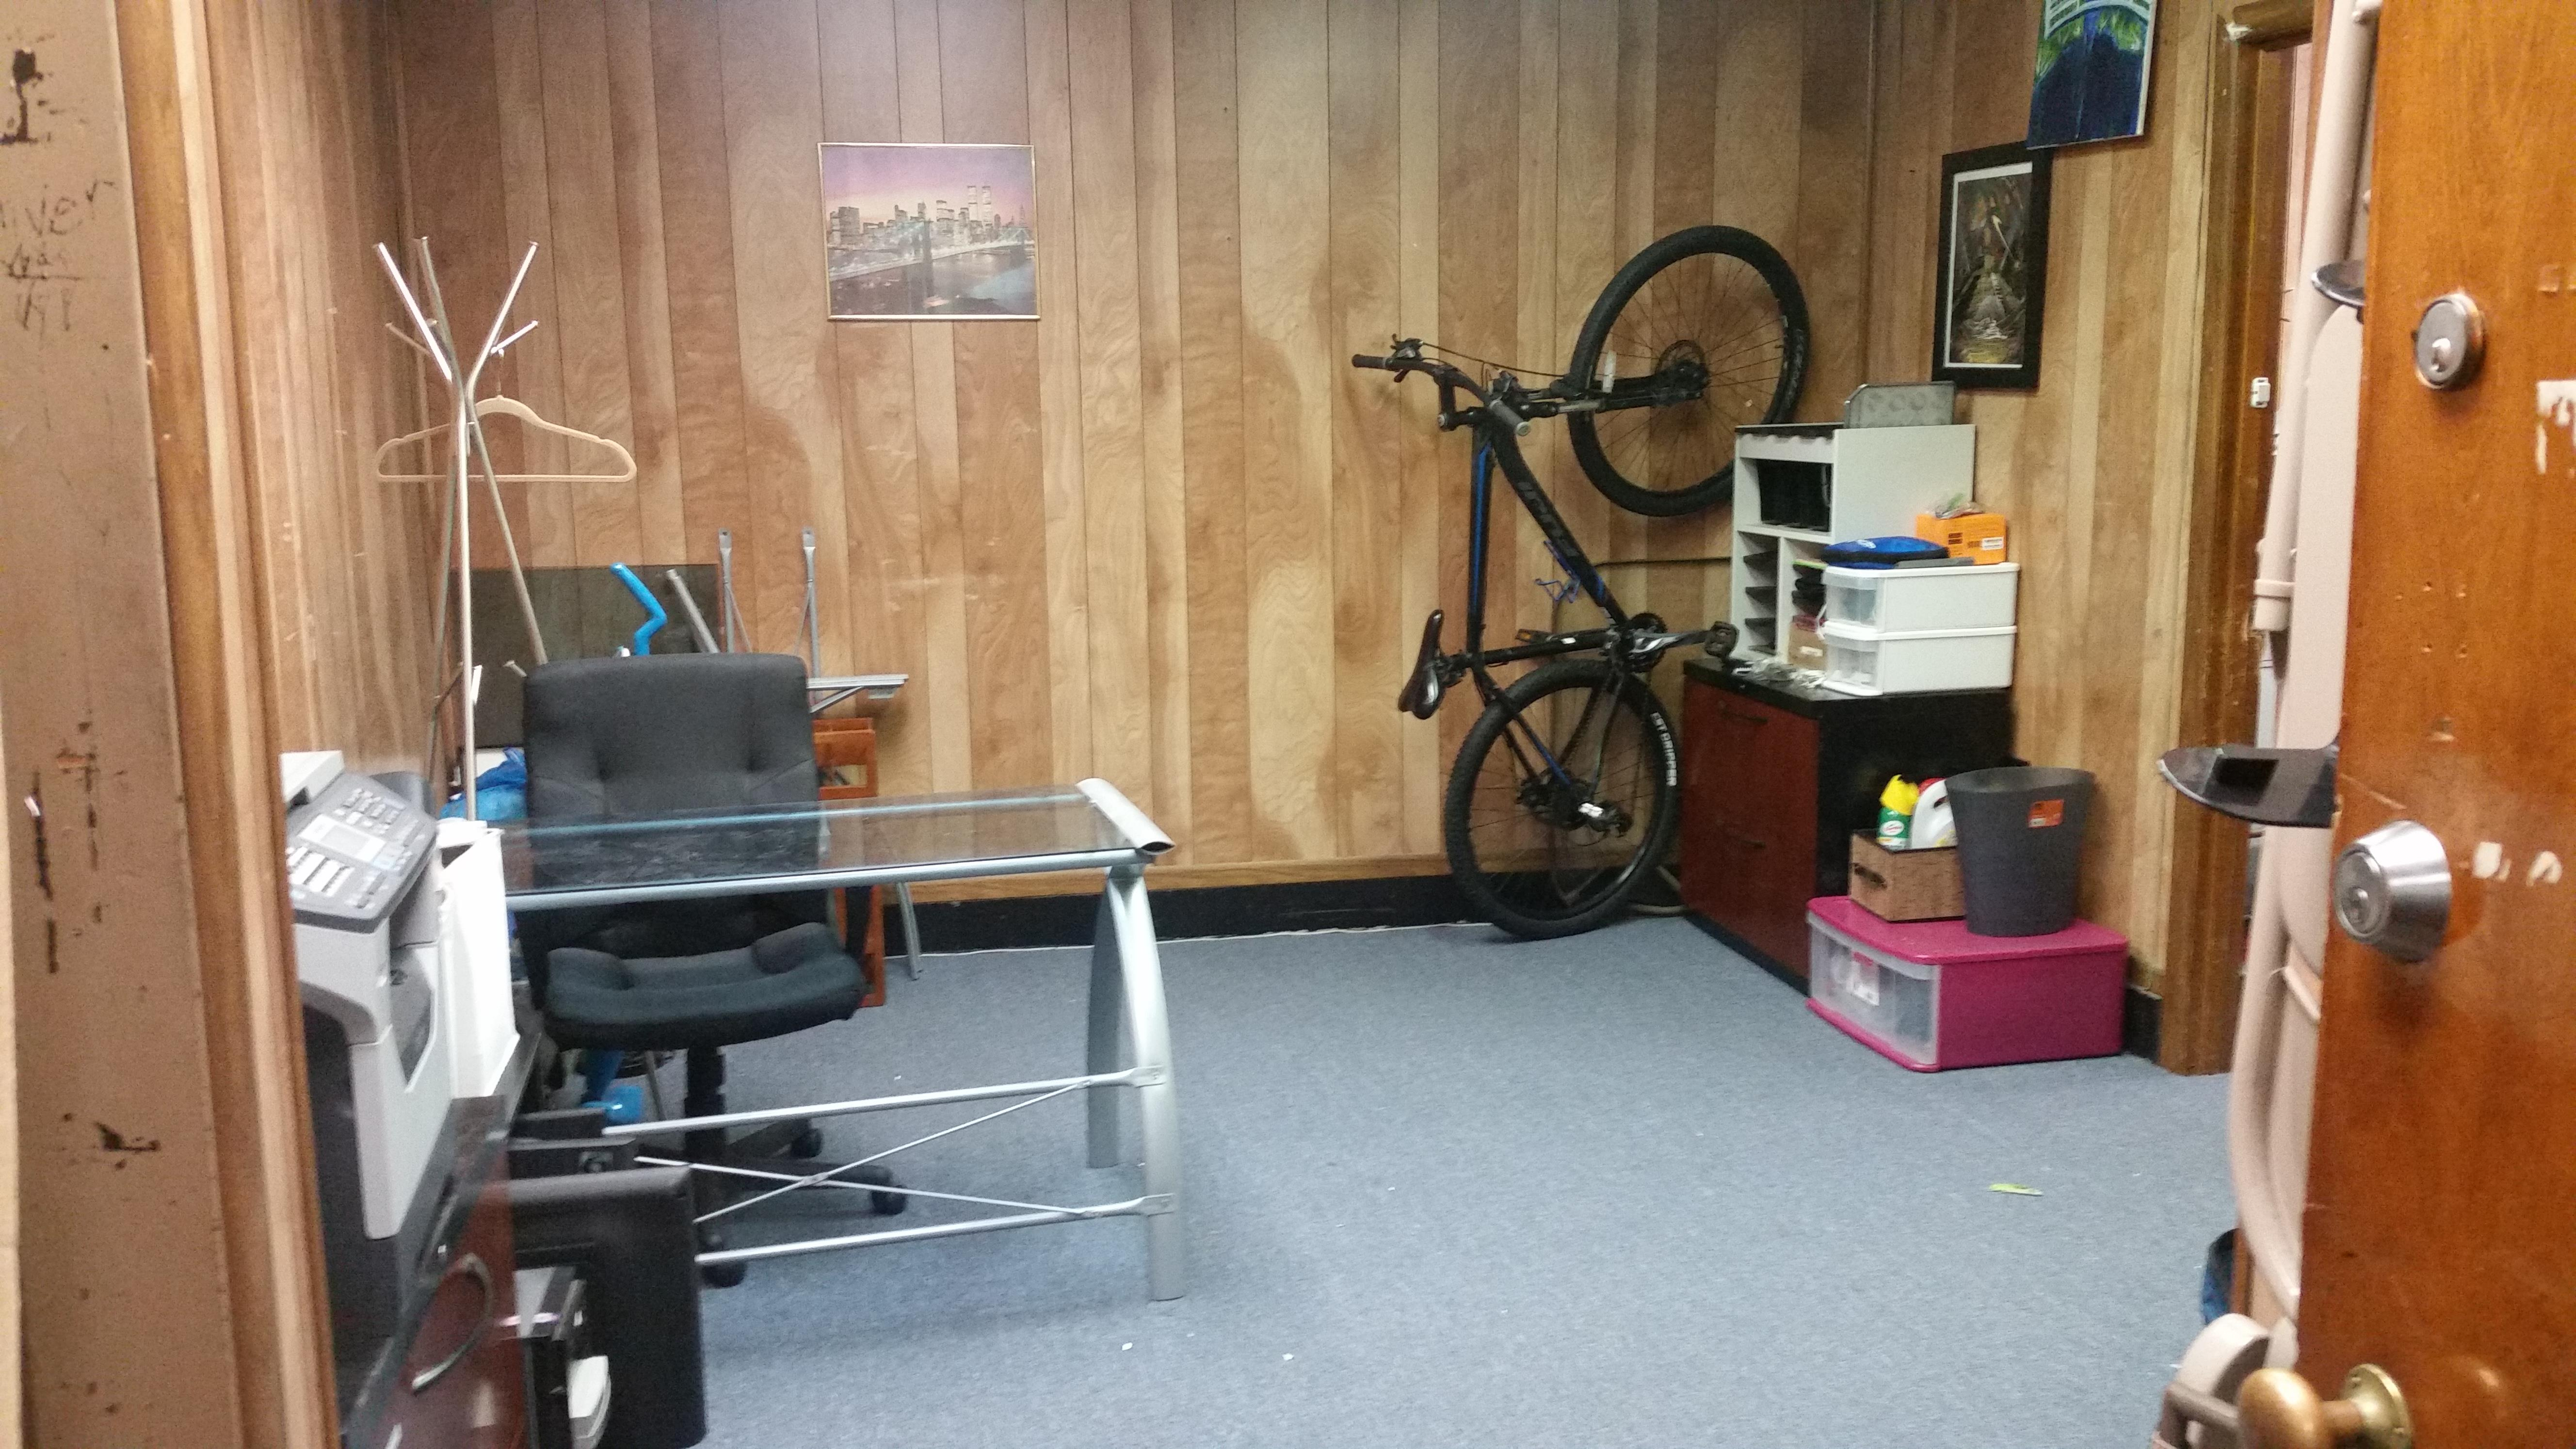 33 Journal Square - Office Suite 209